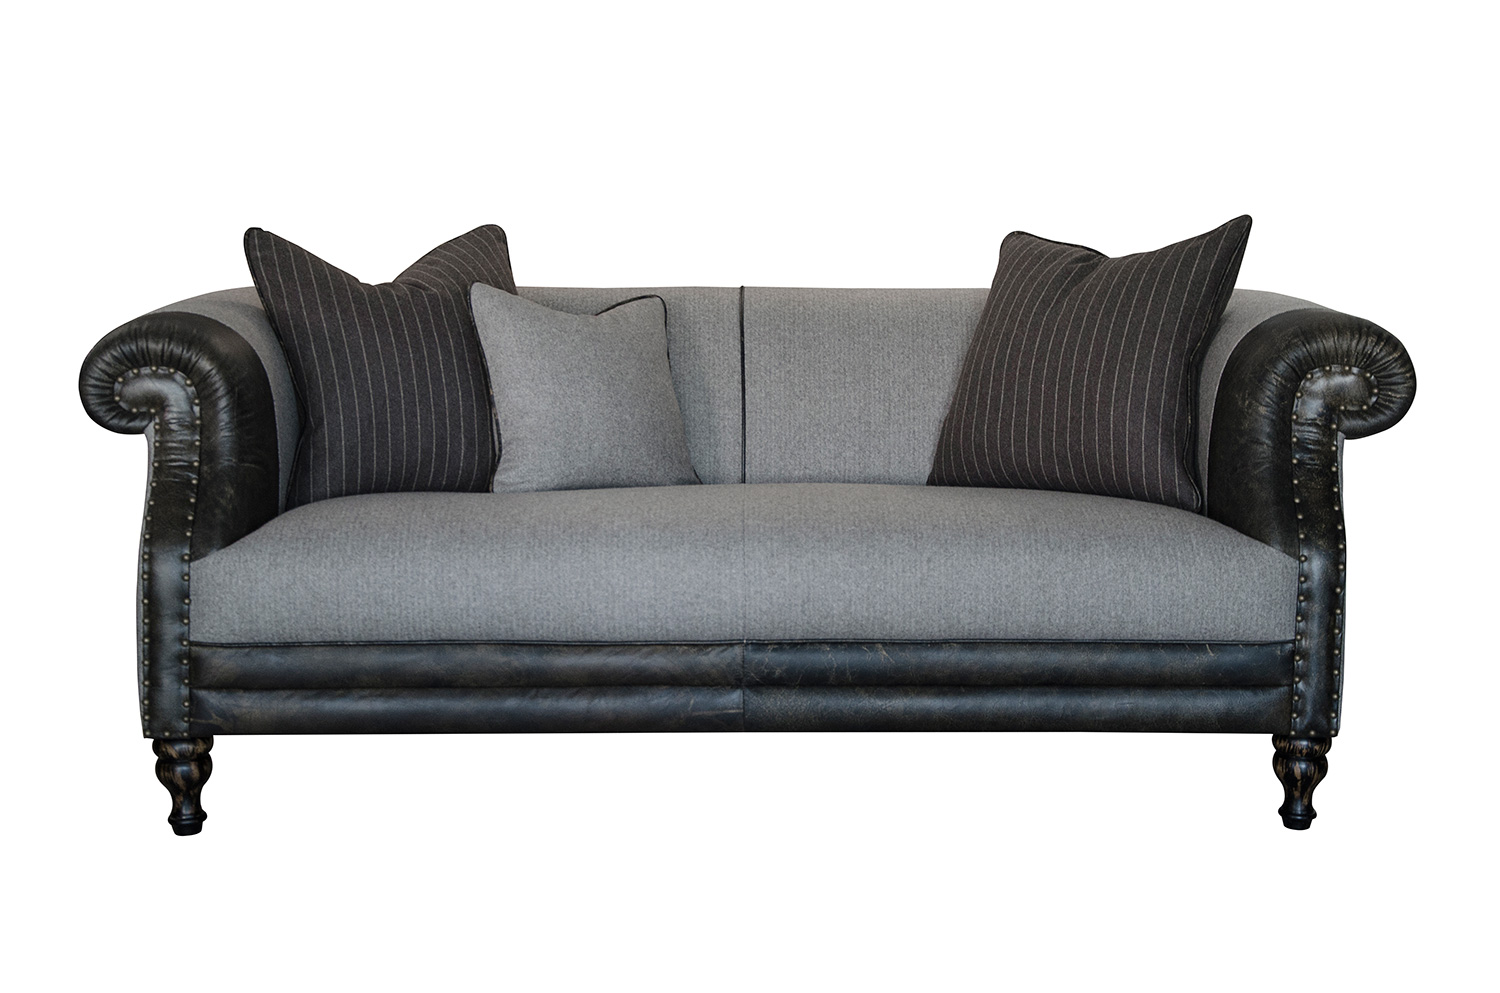 Alexander James Sofas Albert Large Sofa And